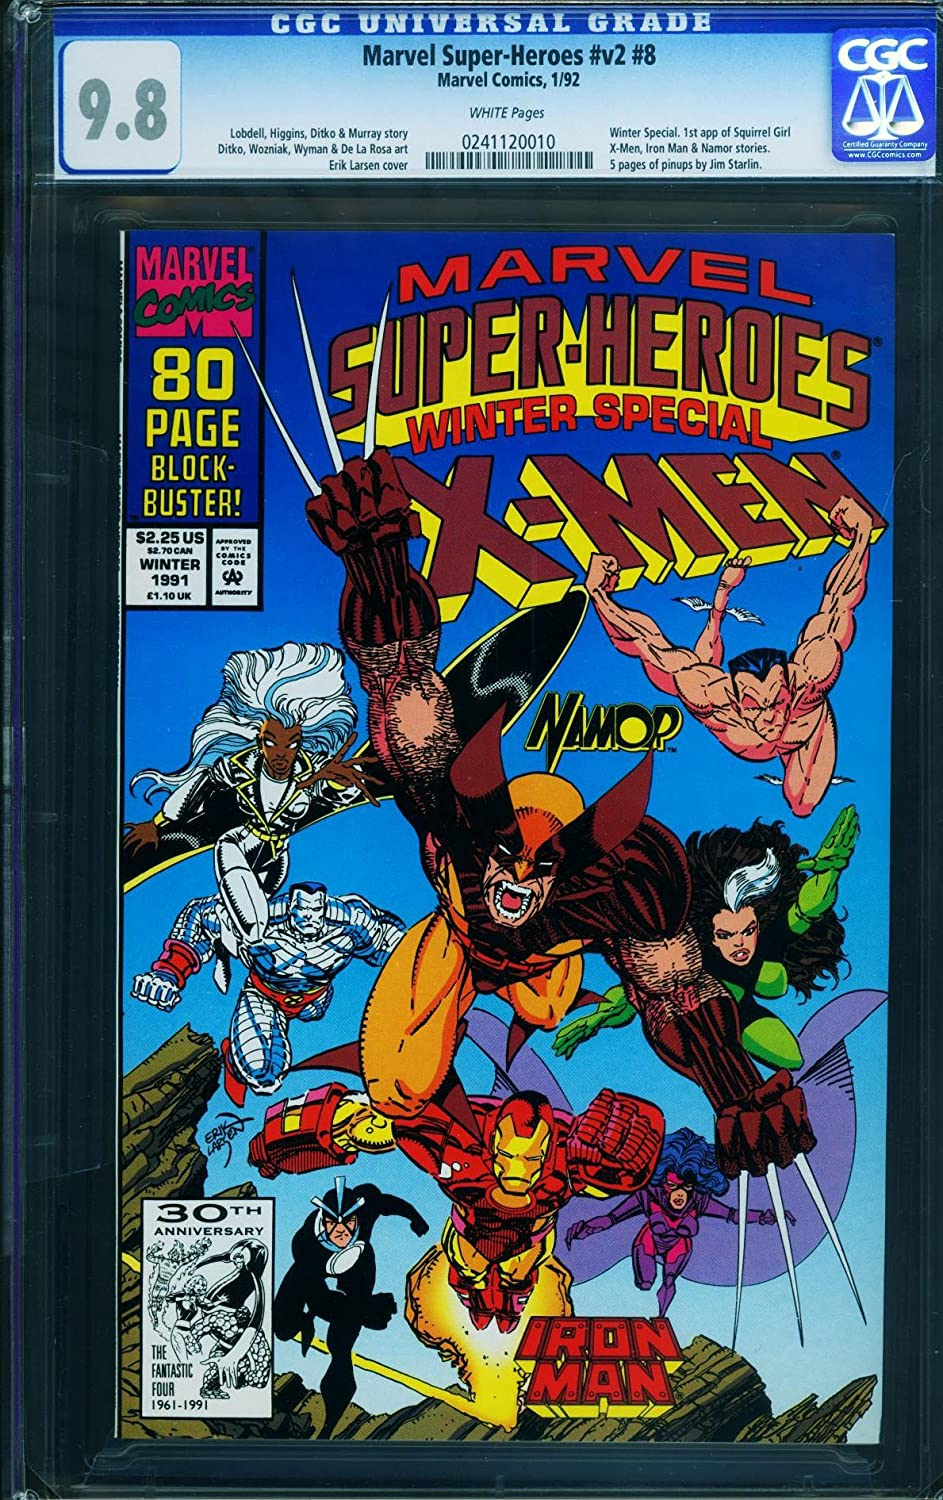 Marvel Super-Heroes Vol. 2 #8 Cgc 9.8-wp-Winter Special1991-First Squirrel Girl elseworlds batman vol 2